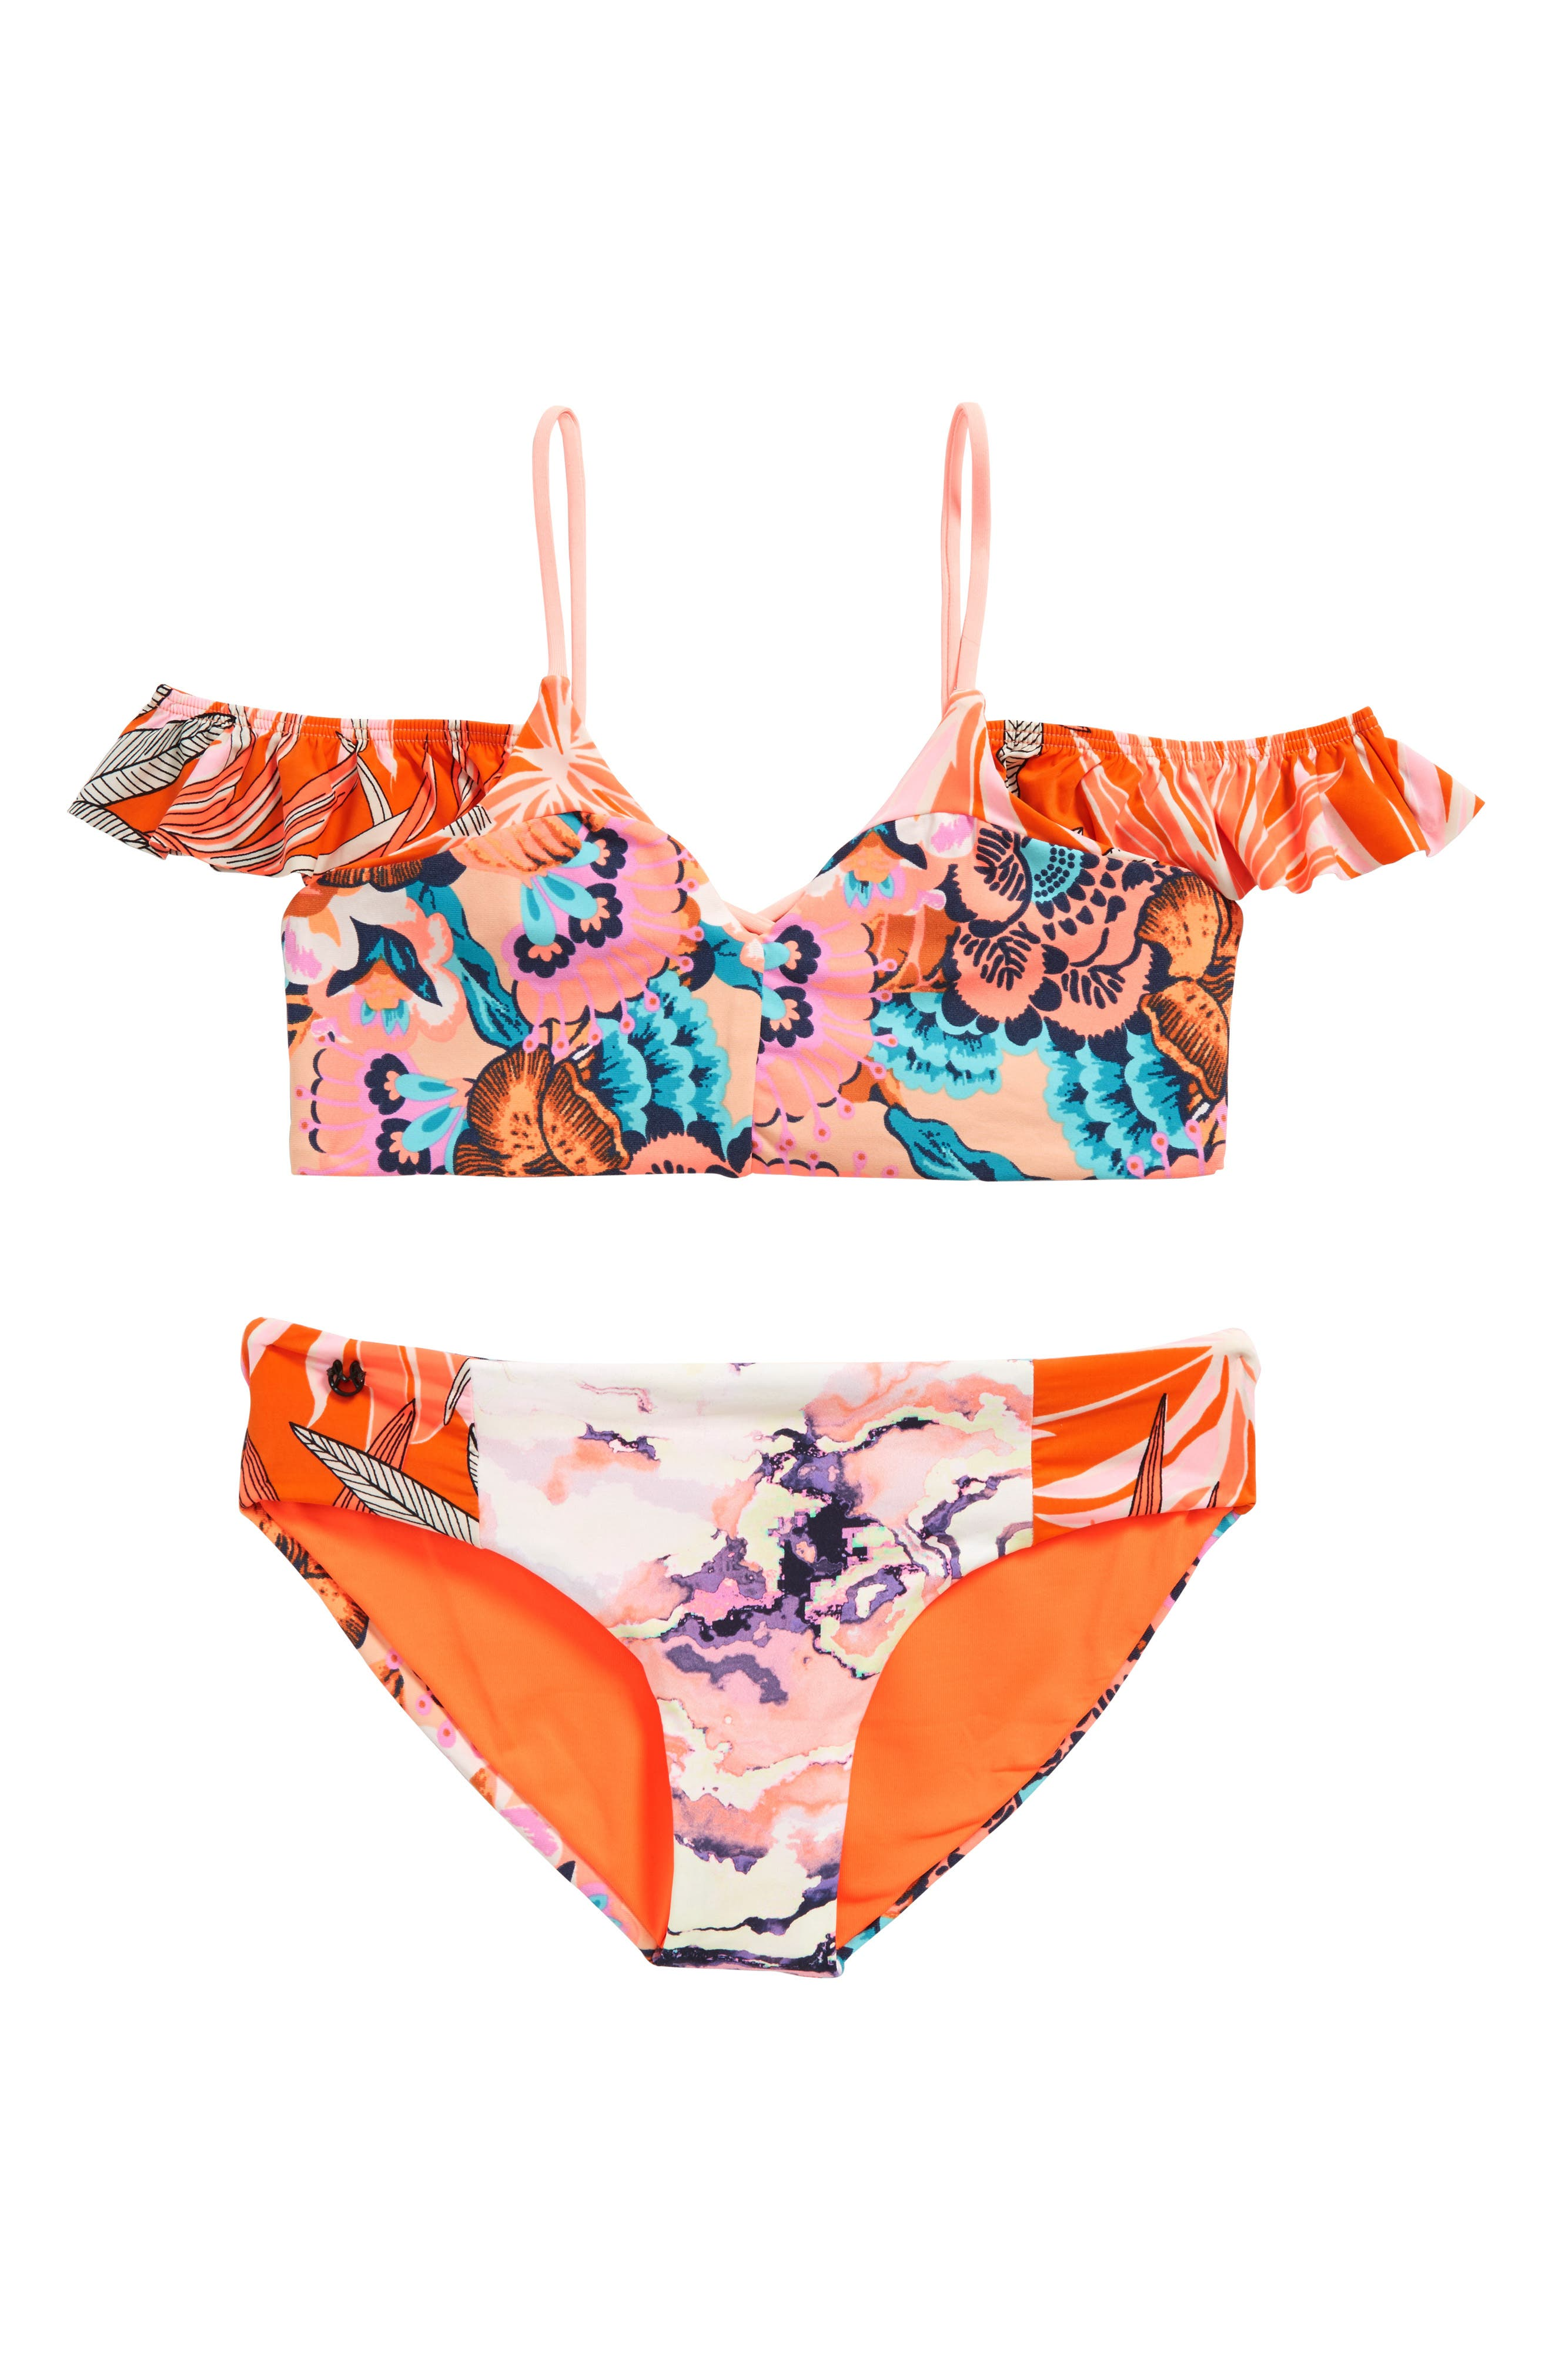 Tropic Cay Two-Piece Reversible Swimsuit,                             Main thumbnail 1, color,                             650